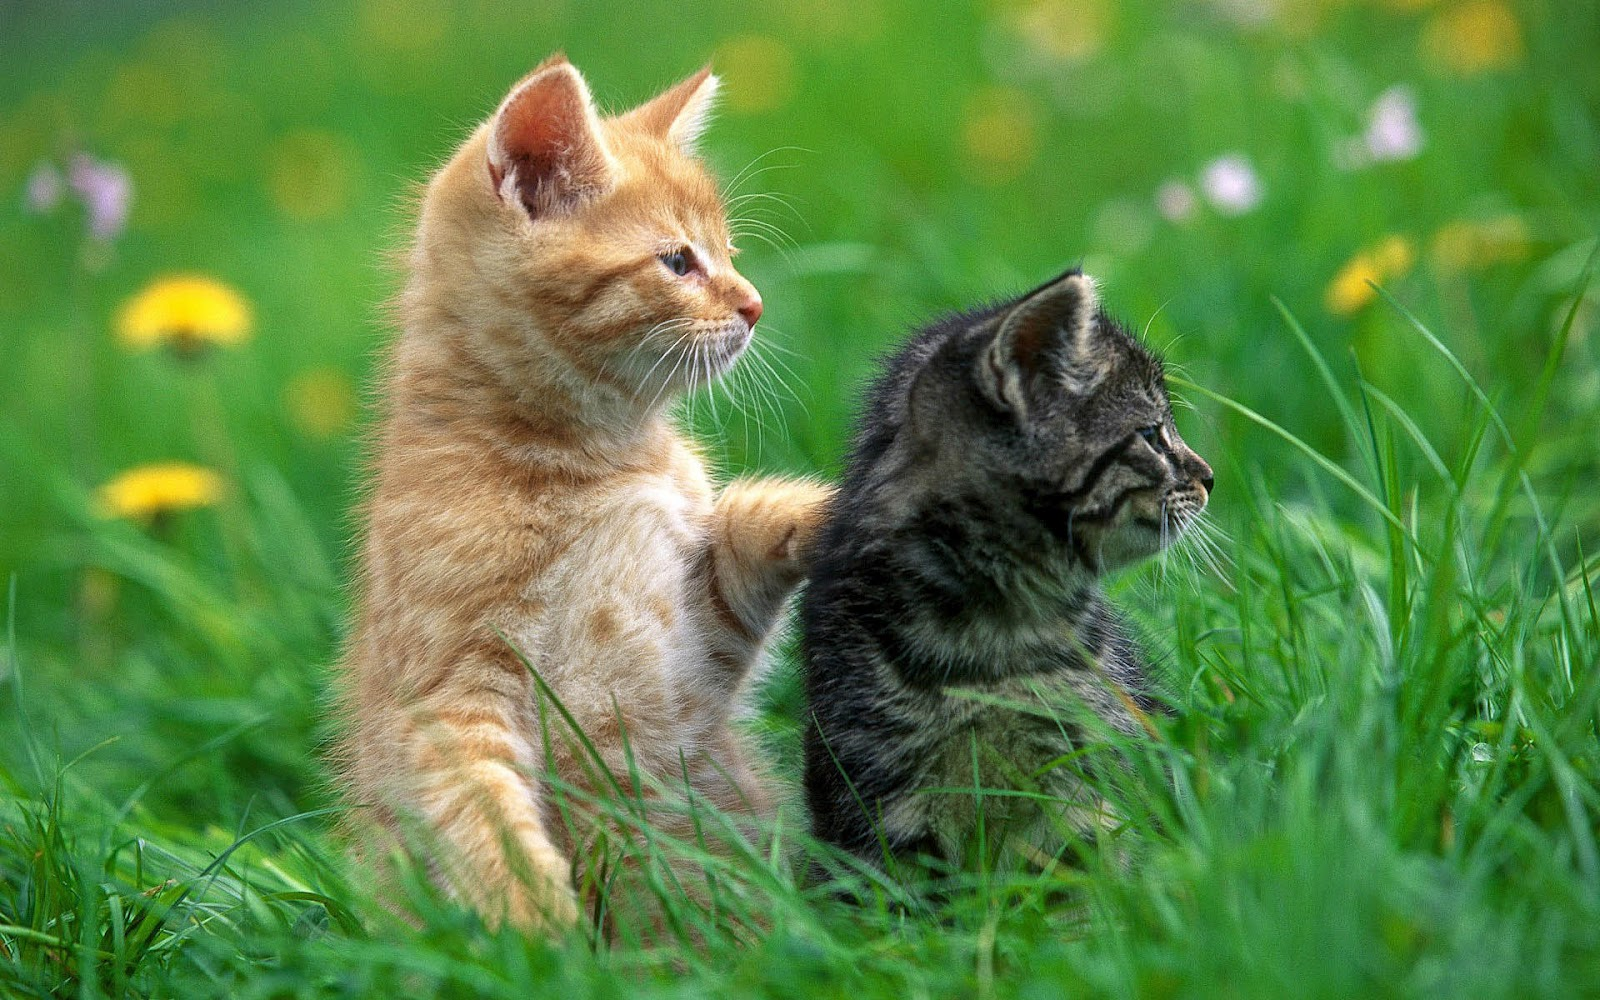 Cute Kitties Hd Wallpapers Cute Cat Wallpapers Entertainment Only